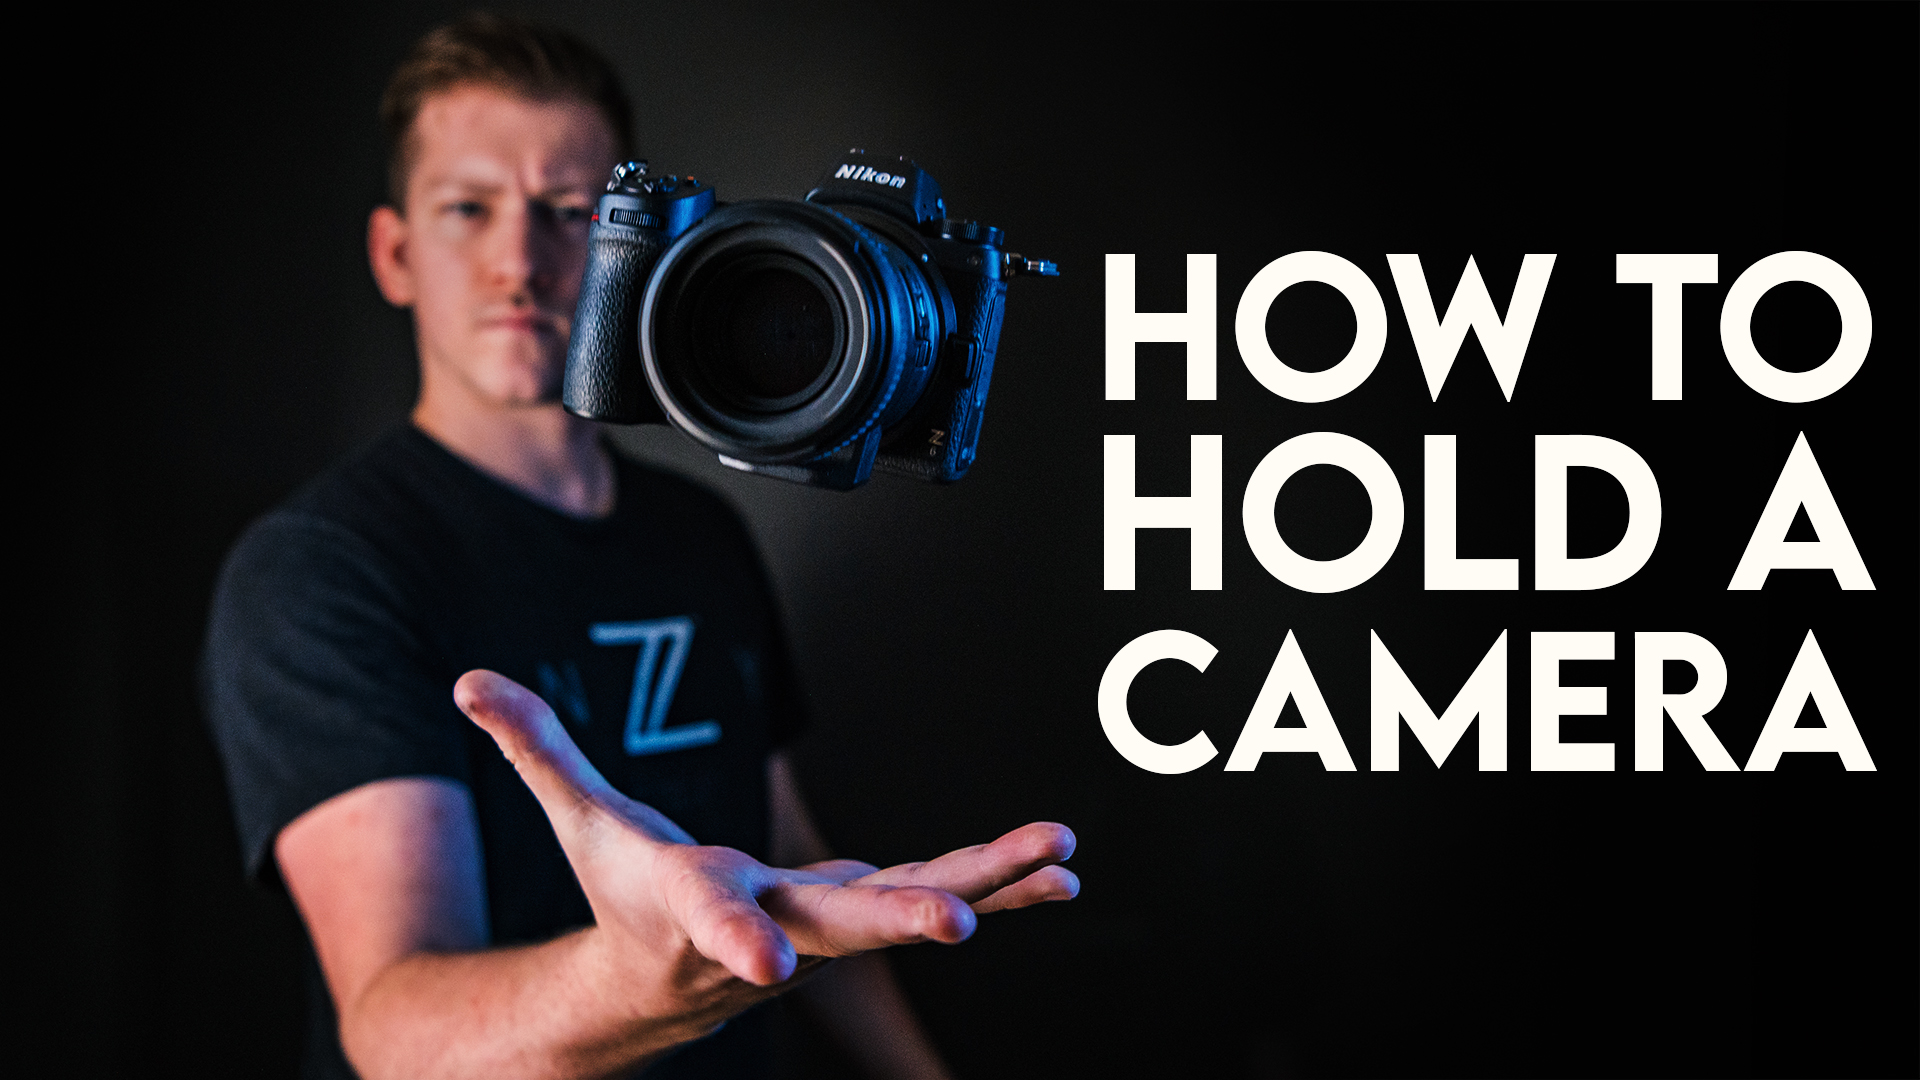 How To Hold Your Camera to Take Sharper Photos